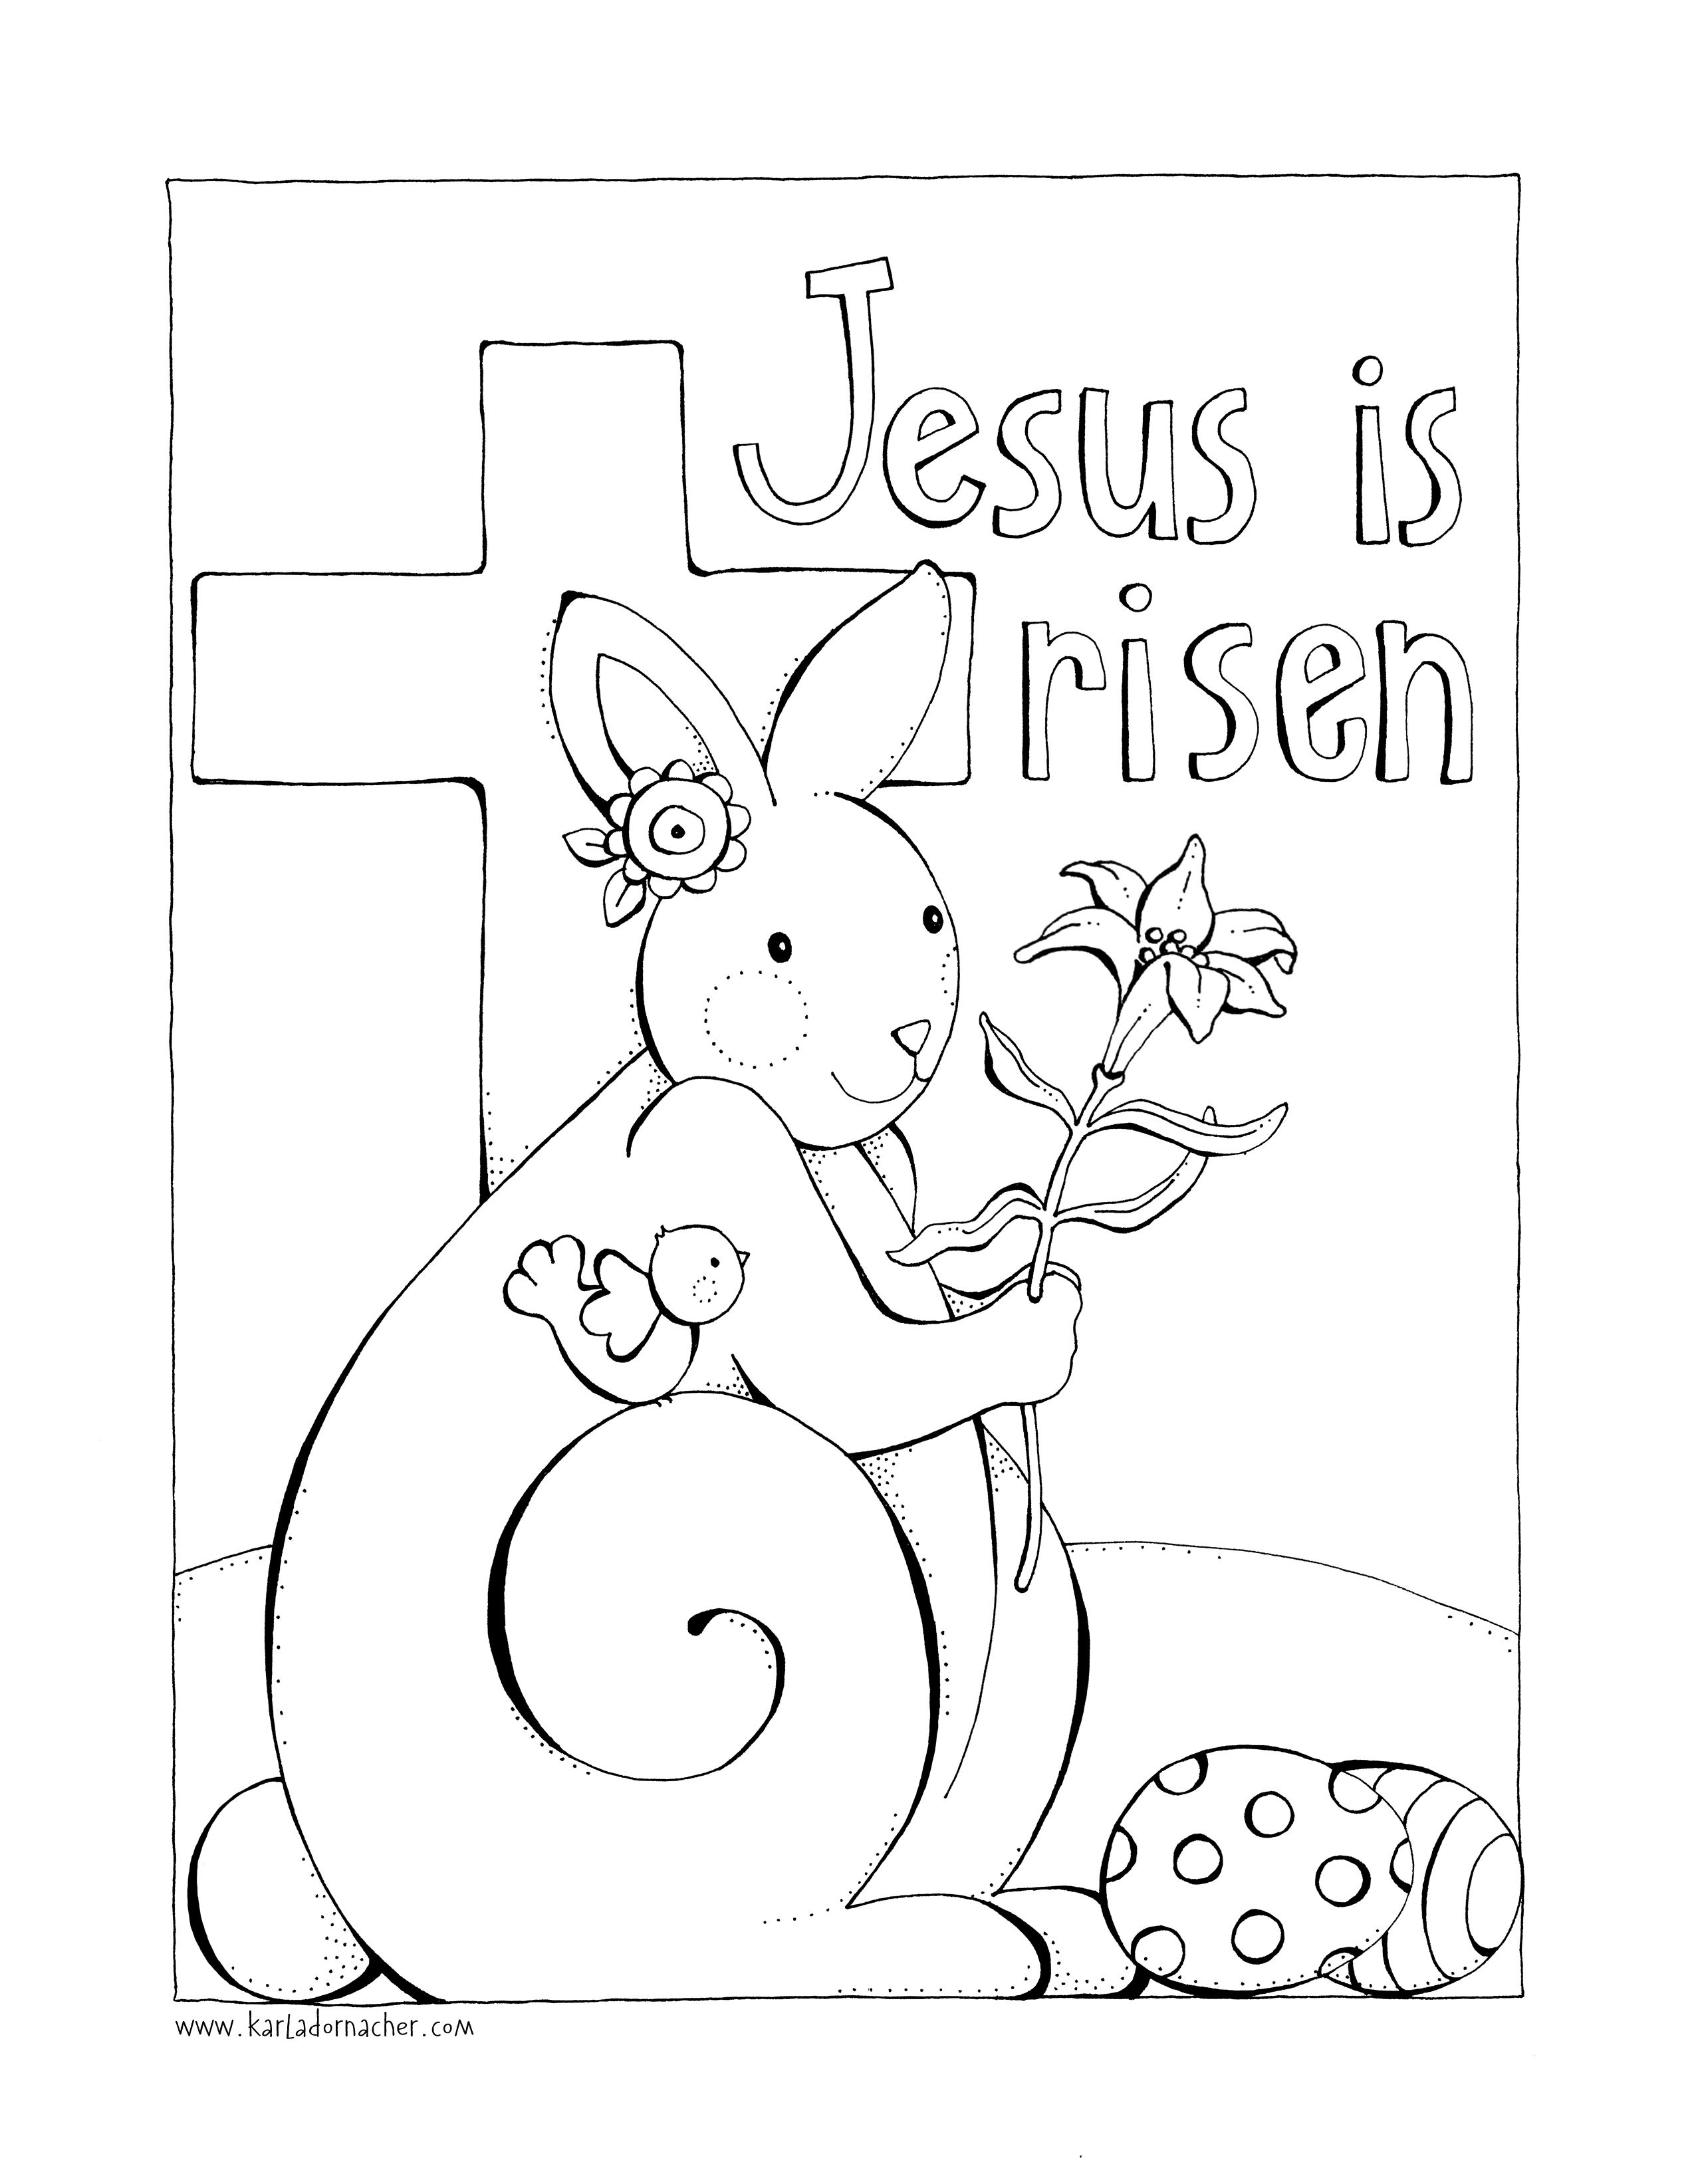 Jesus Is Risen Free Easter Coloring Page You Can Download It